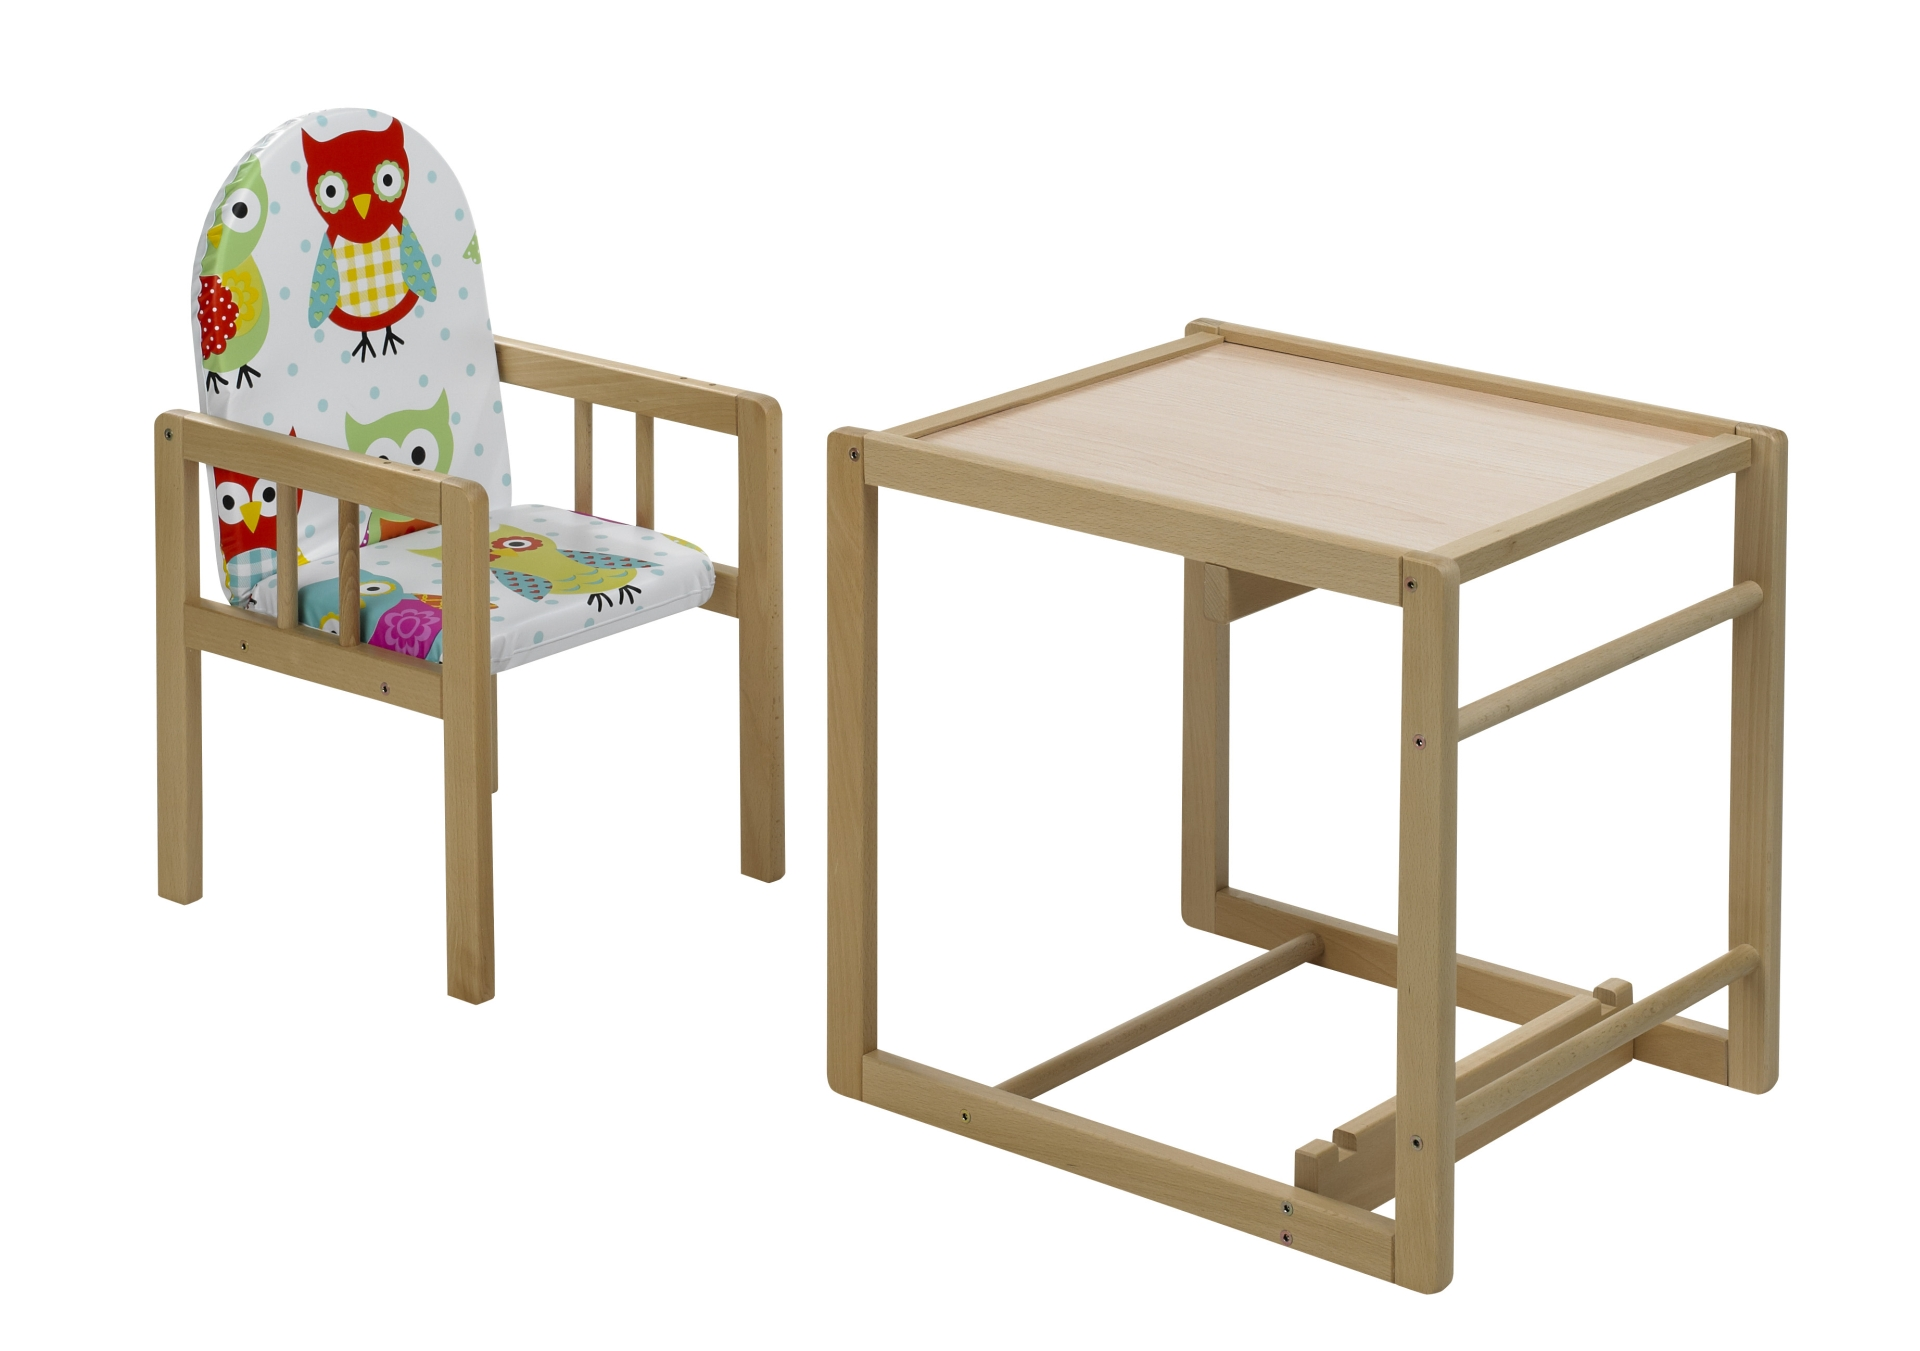 geuther high chair nico 2015 eule buy at kidsroom living sleeping. Black Bedroom Furniture Sets. Home Design Ideas